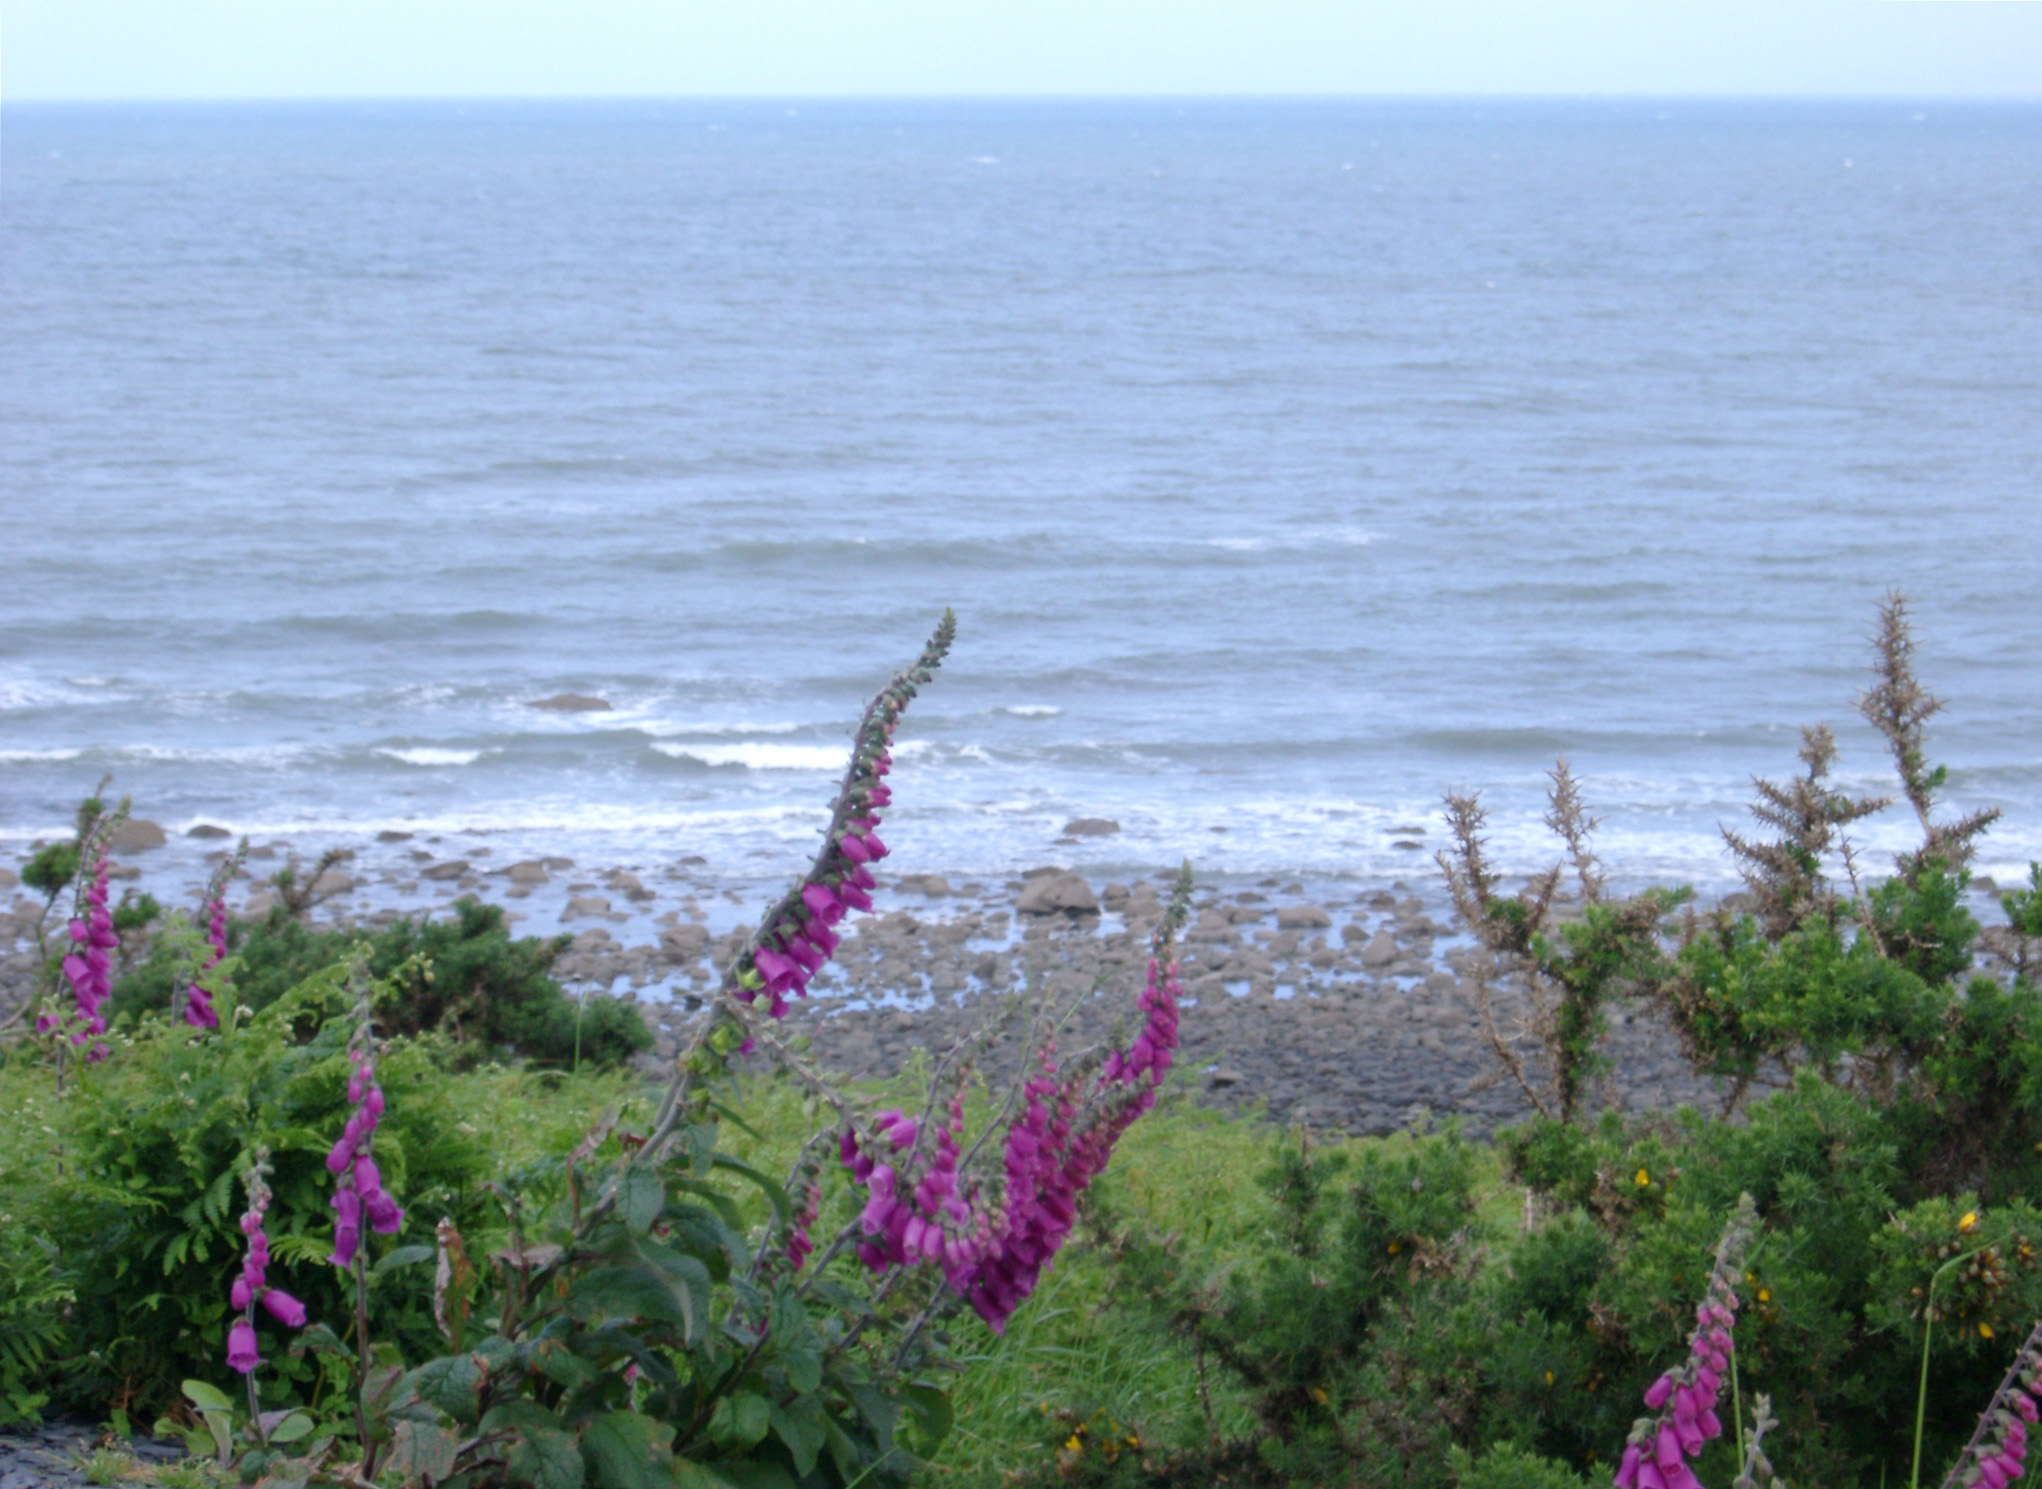 Colorful purple foxgloves growing on the coast on a cliff top overlooking the beach and calm sea